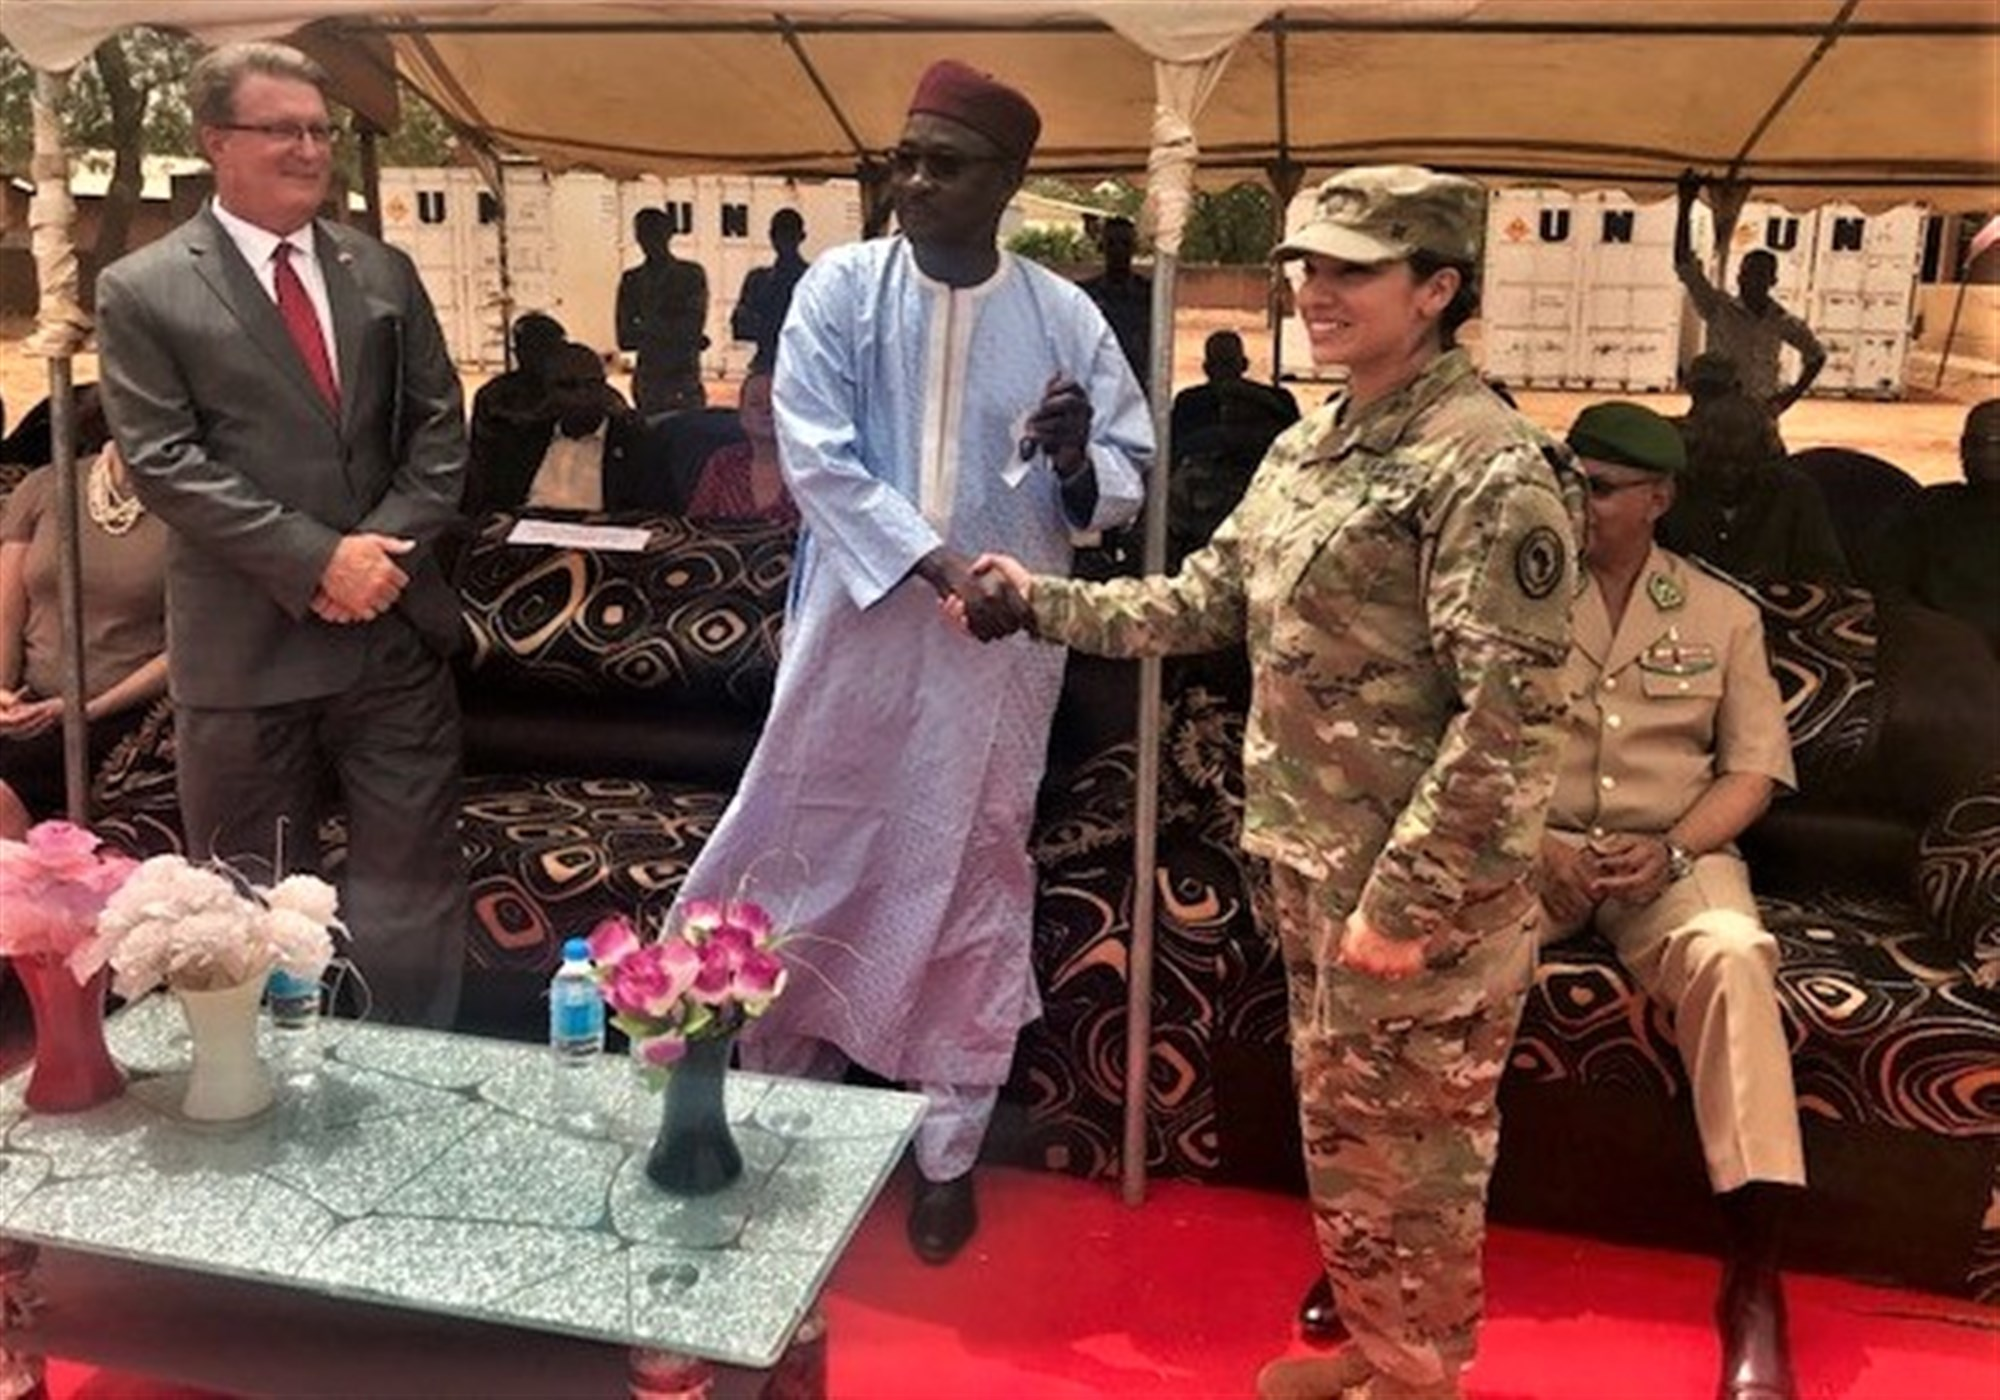 U.S. Army Maj. Maia Molina-Schaefer, chief, Office of Security Cooperation hands the keys to the U.S. provided vehicles to Kalla Moutari, Nigerien Defense Minister, during the G5 Sahel Equipment Handover Ceremony at the Direction Centrale du Materiel in Niamey, Niger, June 6, 2019. The equipment, which is the first shipment of the more than $21 million the United States has pledged to provide to Niger for the G5 Sahel efforts, included transport, fuel and water trucks; GPS-enabled navigation systems; fuel containers; military tents and individual soldier equipment.  (Courtesy photo)